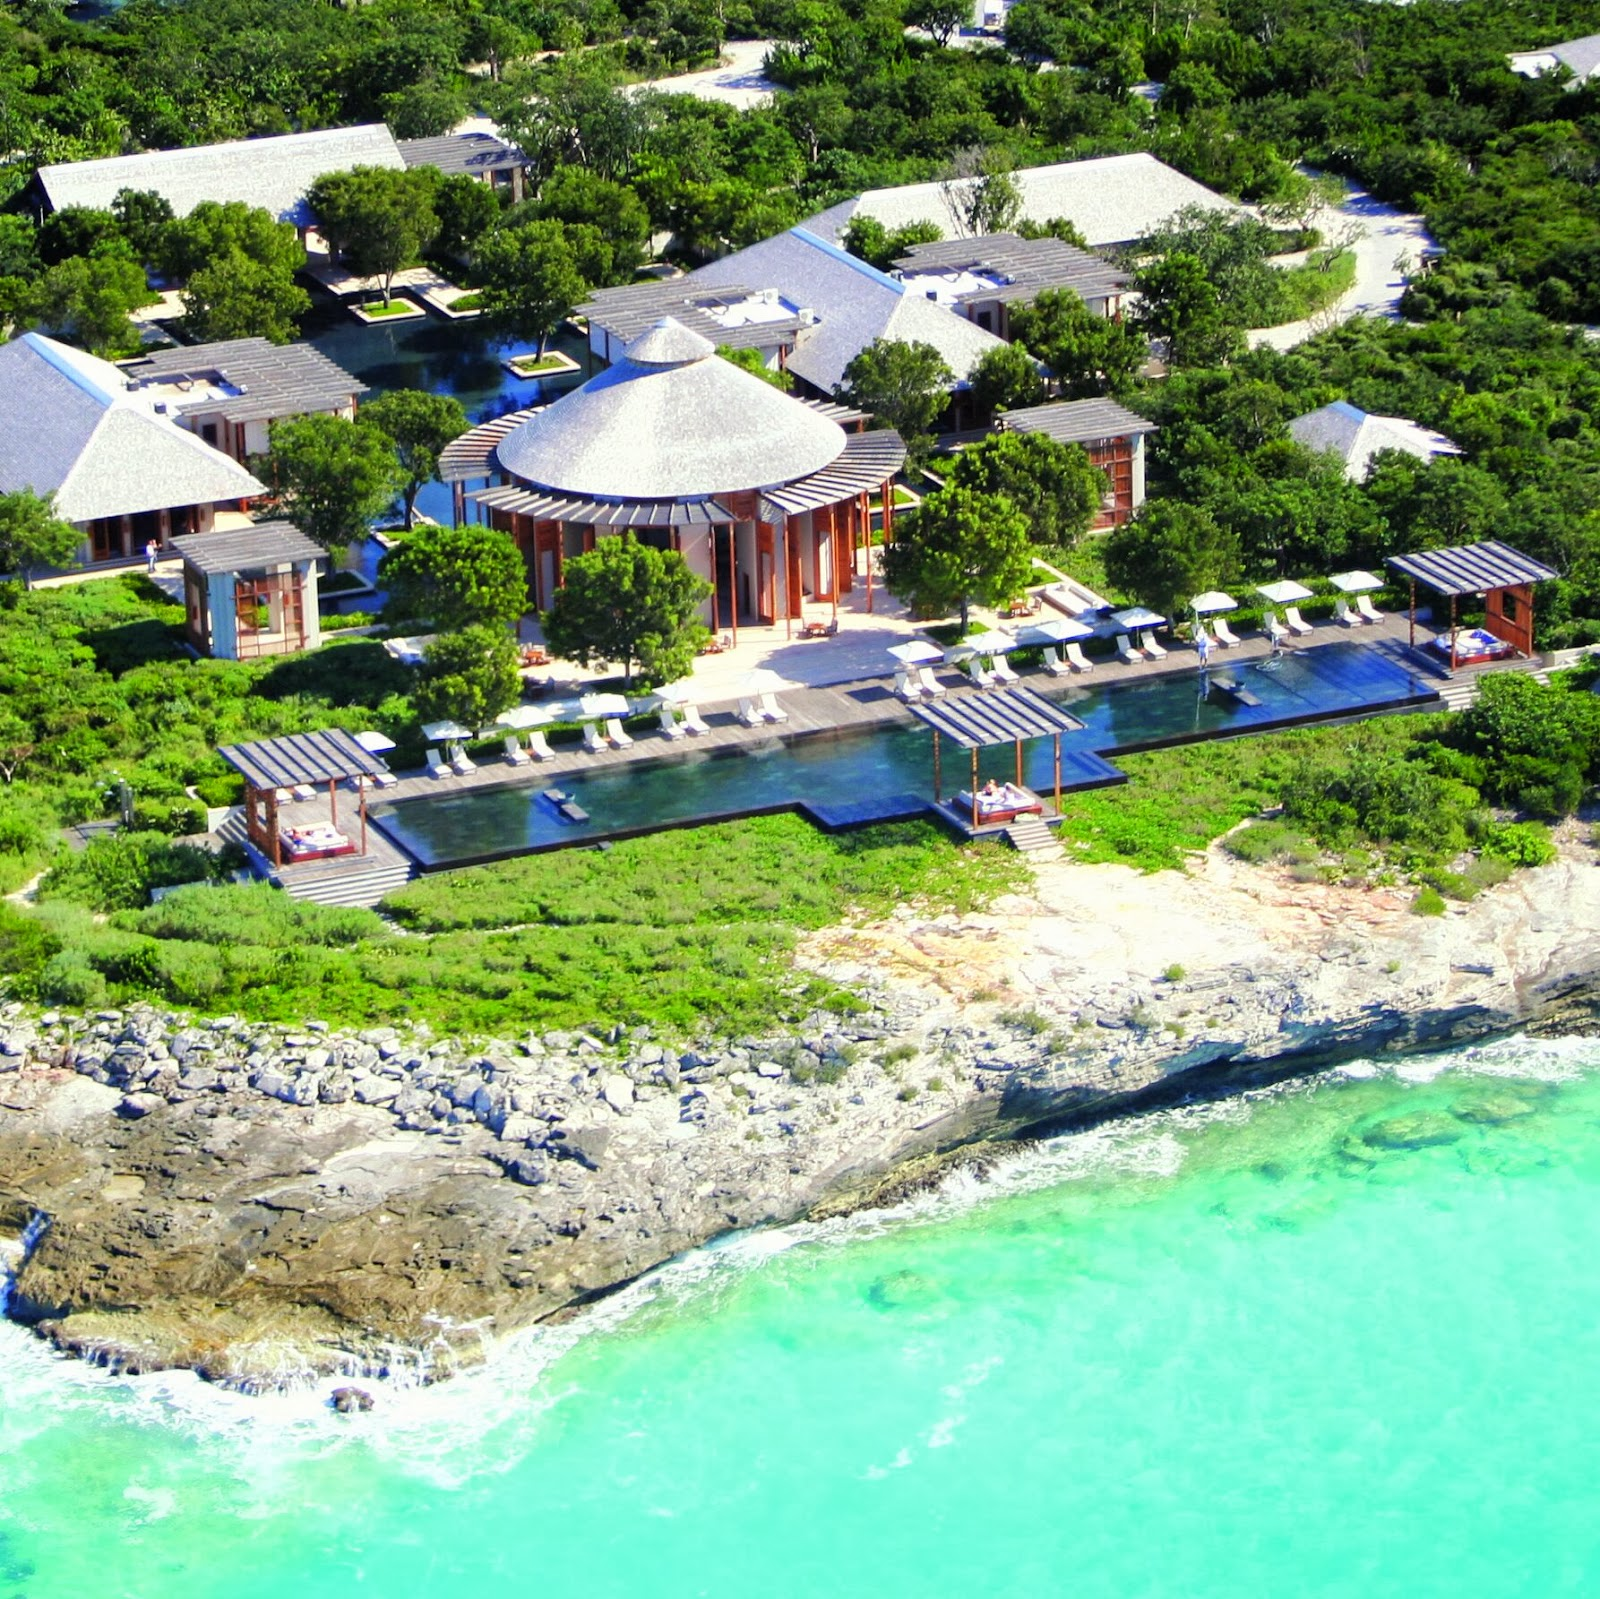 """Island Resort: Wallpaper: Beauty Of Nature """"Turks And Caicos Islands"""